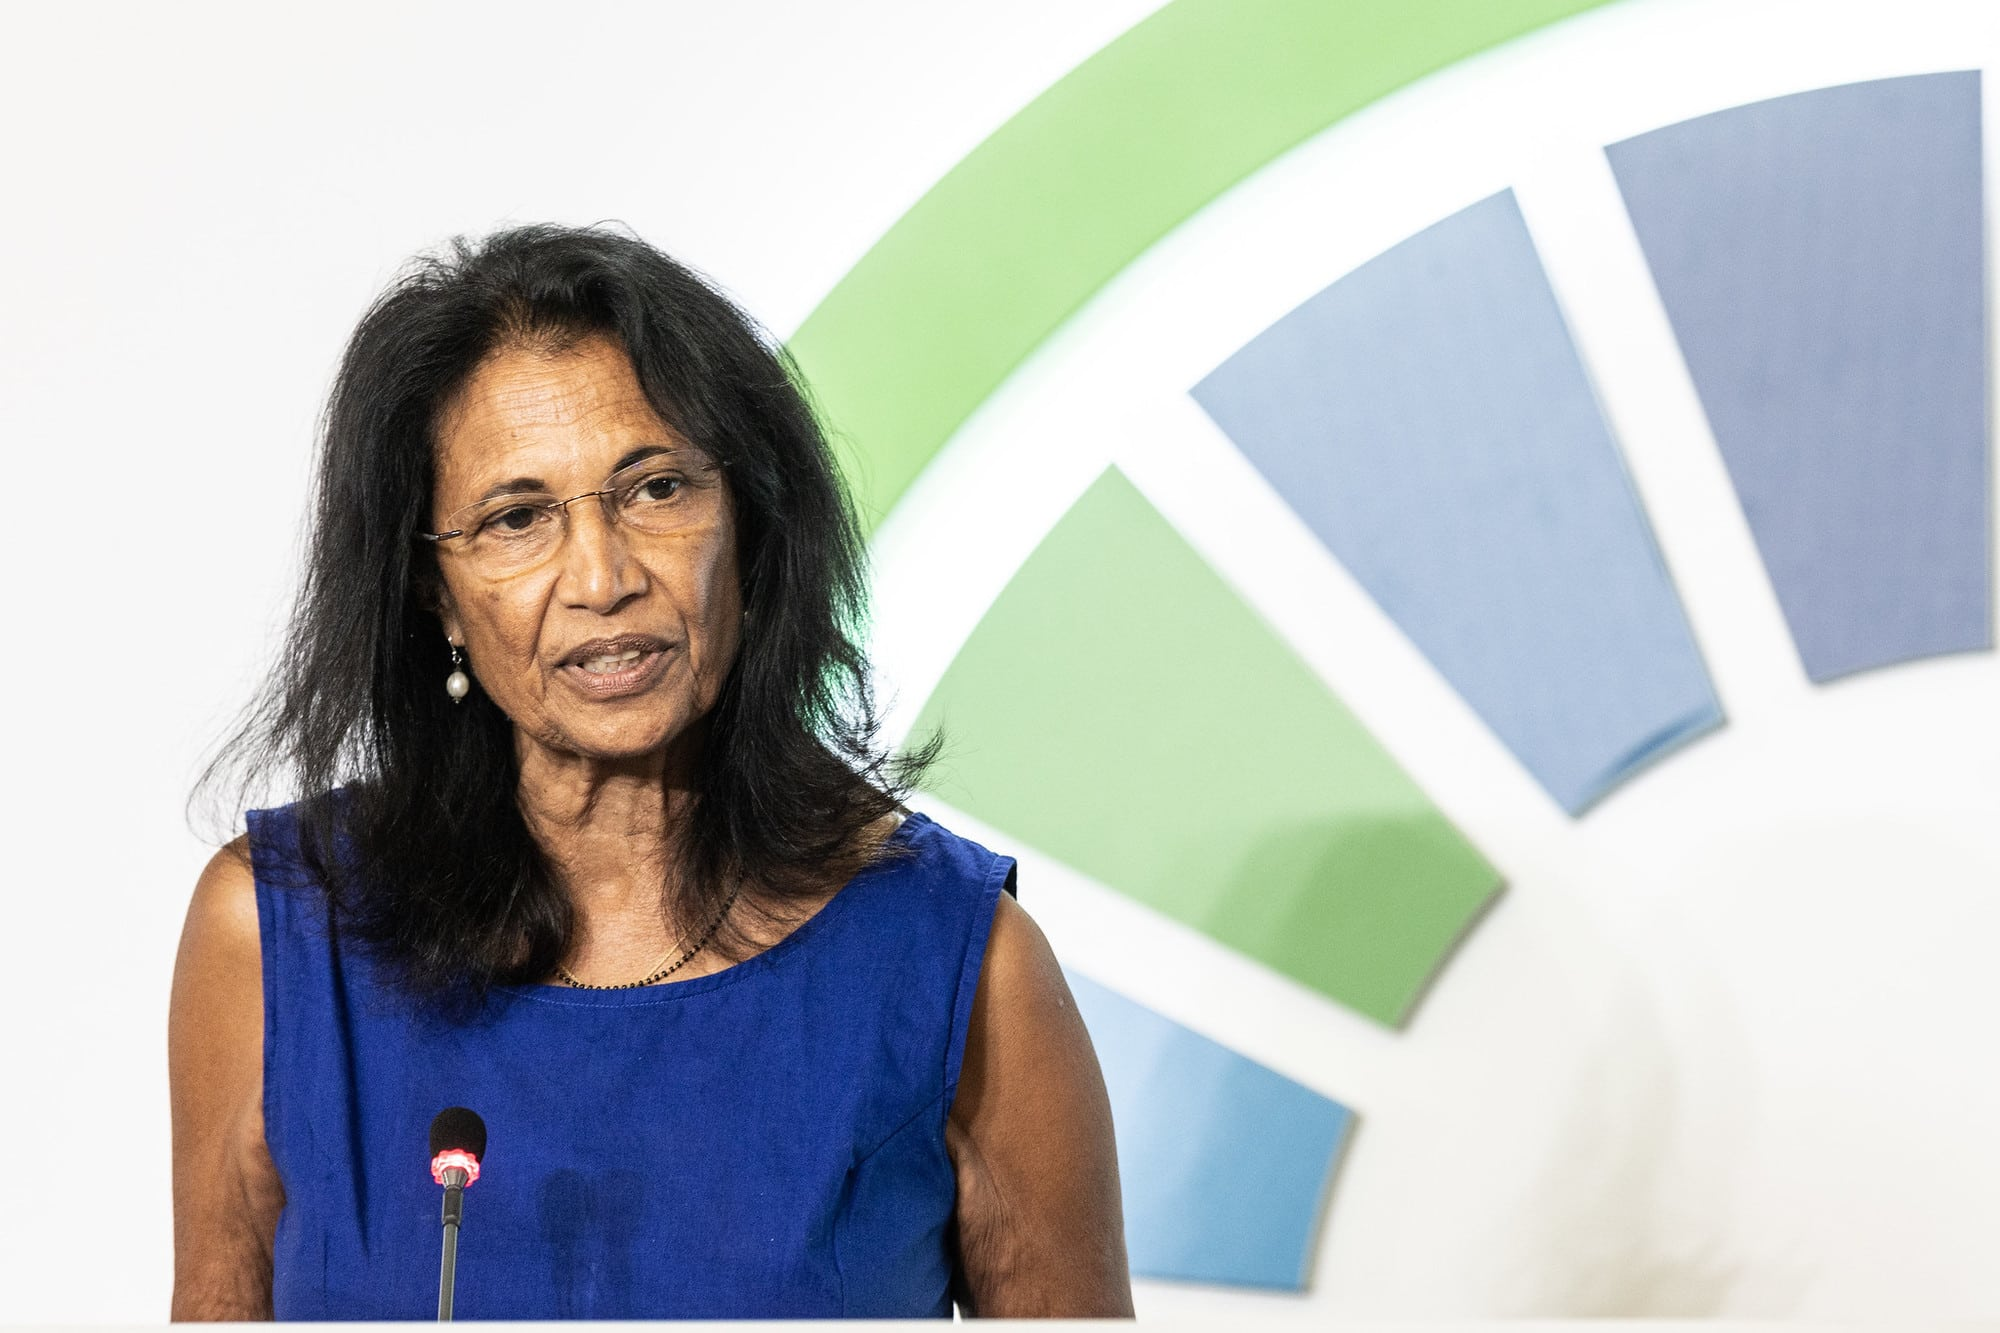 Shakuntala Thilsted presenting her speech on aquatic foods for health, wealth and ecological recovery at the UN Food Systems Pre-Summit event. Photo by Cristiano Minichiello/UN Photo.